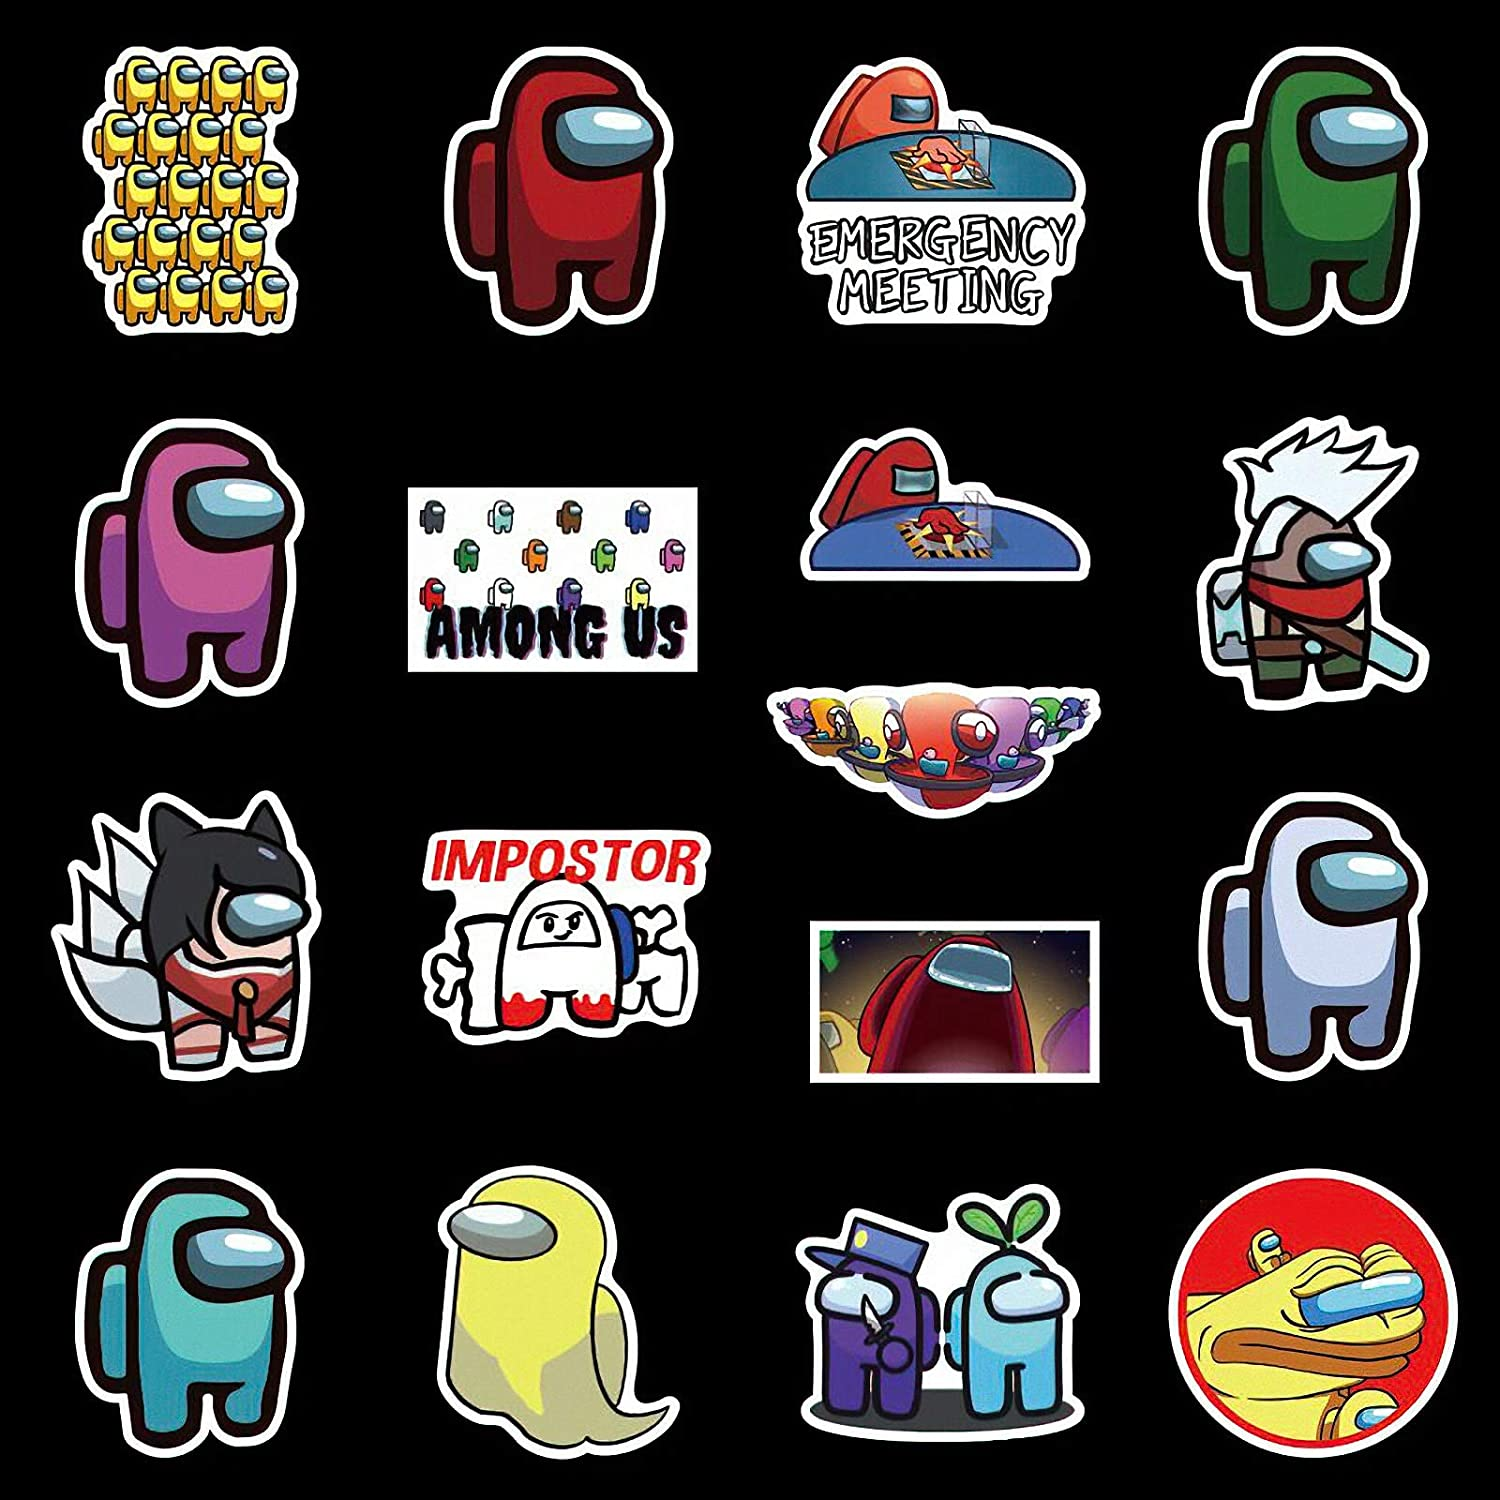 bumpers 100 computers DIY decoration as a gift for teenage girls hard hats laptops 100PCS popular game sticker decals car stickers and decals vinyl waterproof stickers water bottles phones